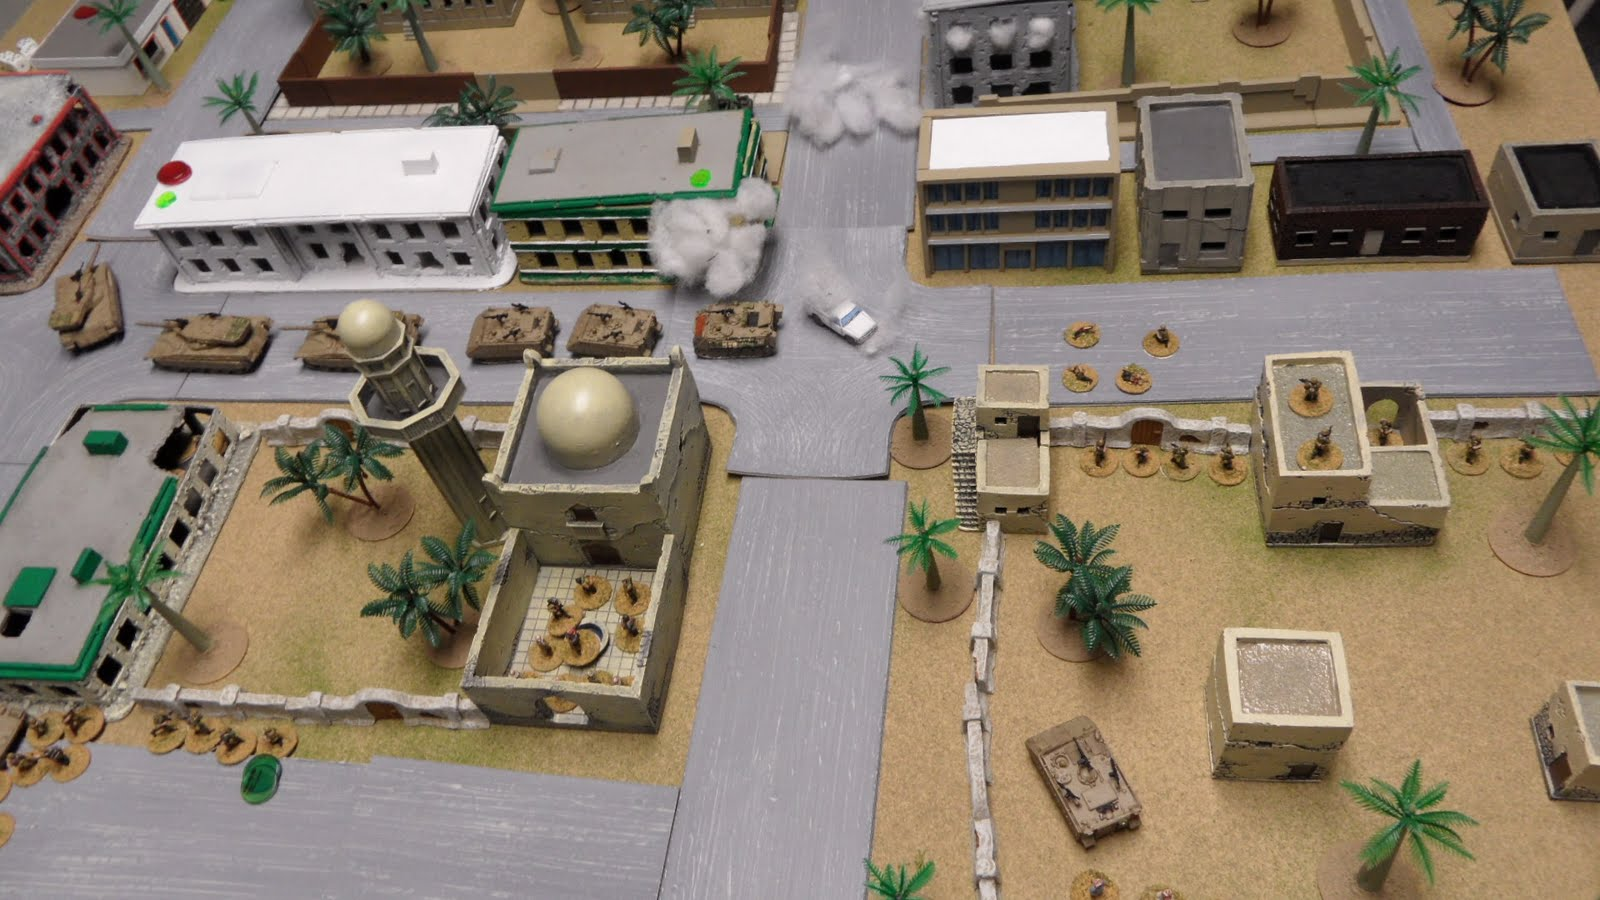 The Merkava Platoon makes its way past the torn-up intersection, looking for the RR...